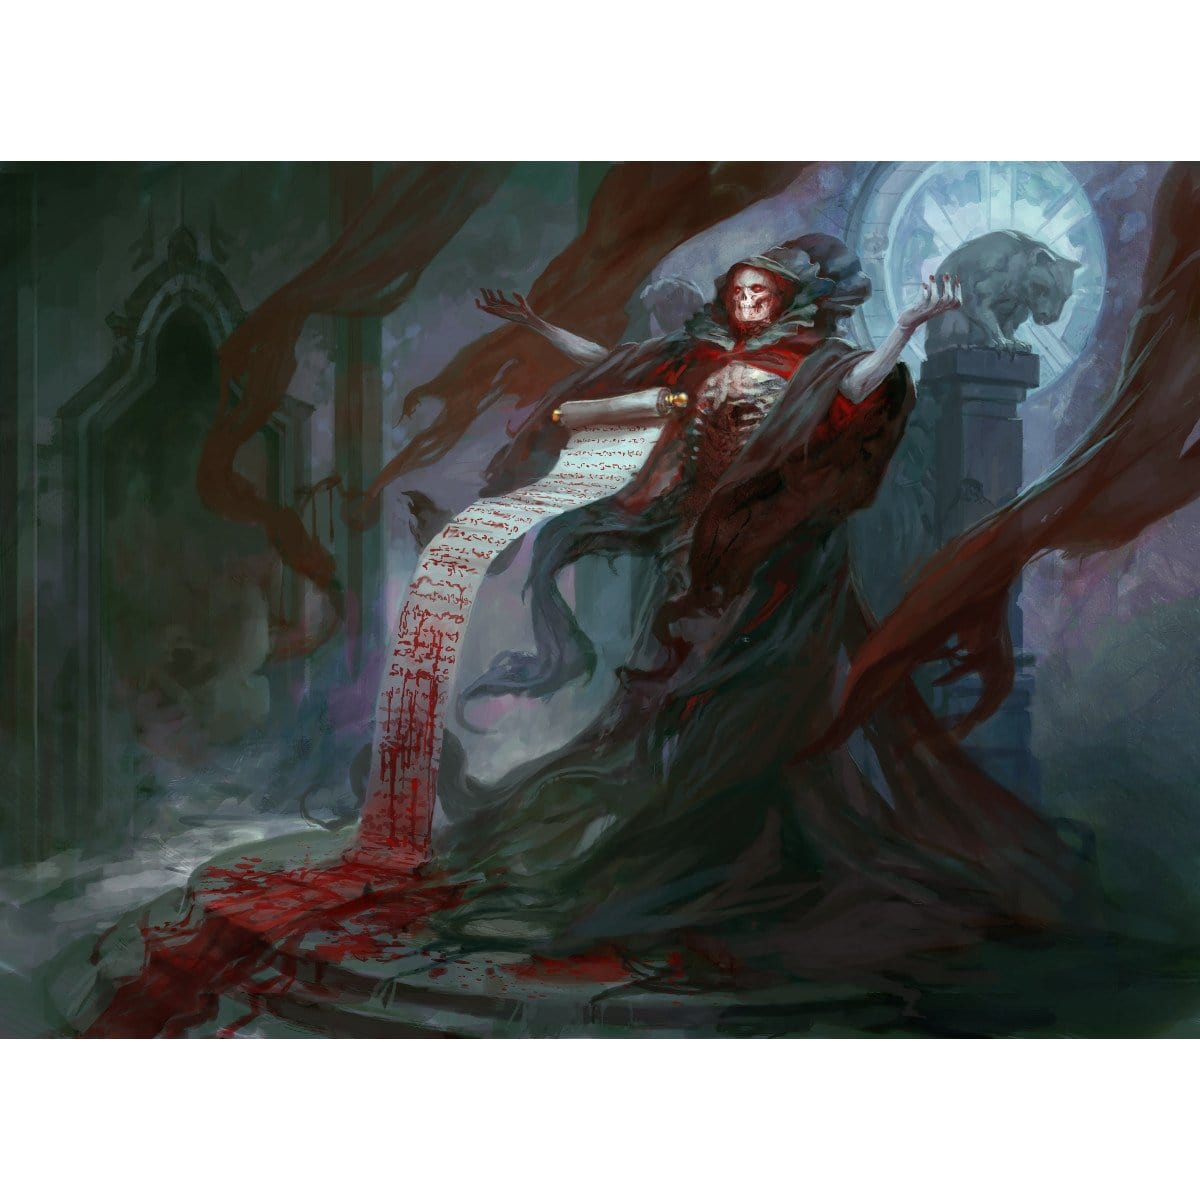 Blood Scrivener Print - Print - Original Magic Art - Accessories for Magic the Gathering and other card games